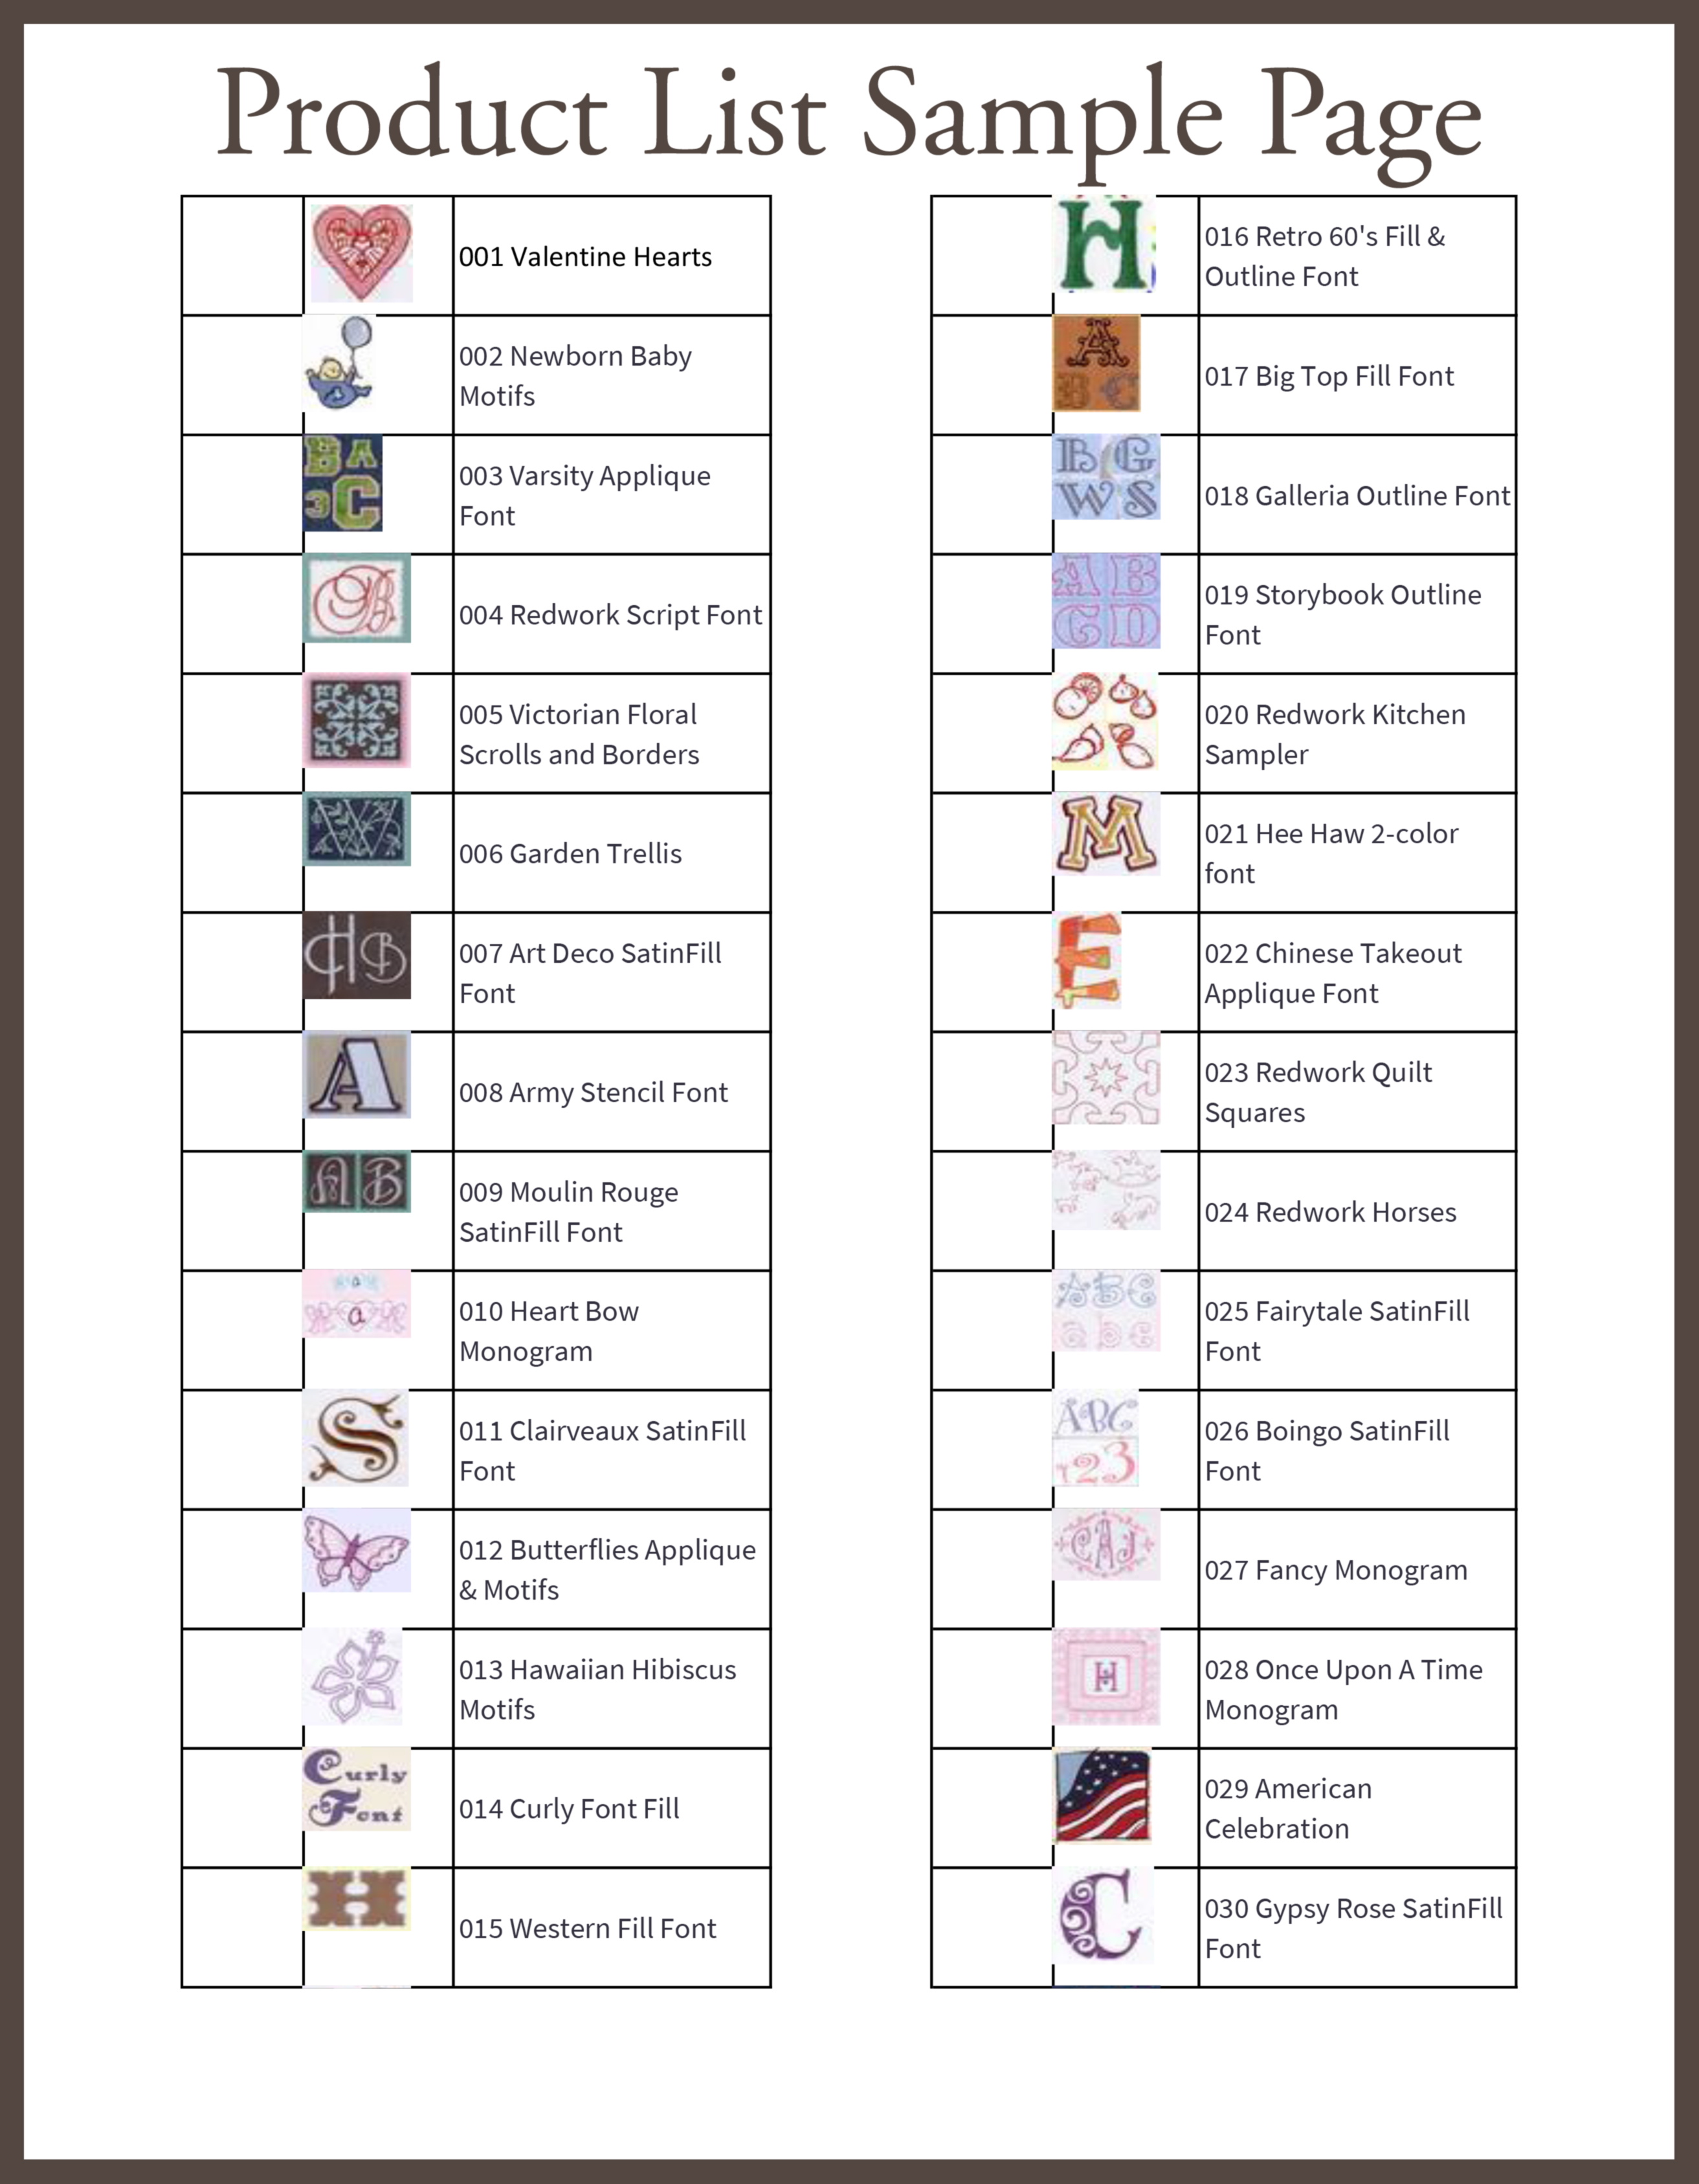 Product List Page Sample